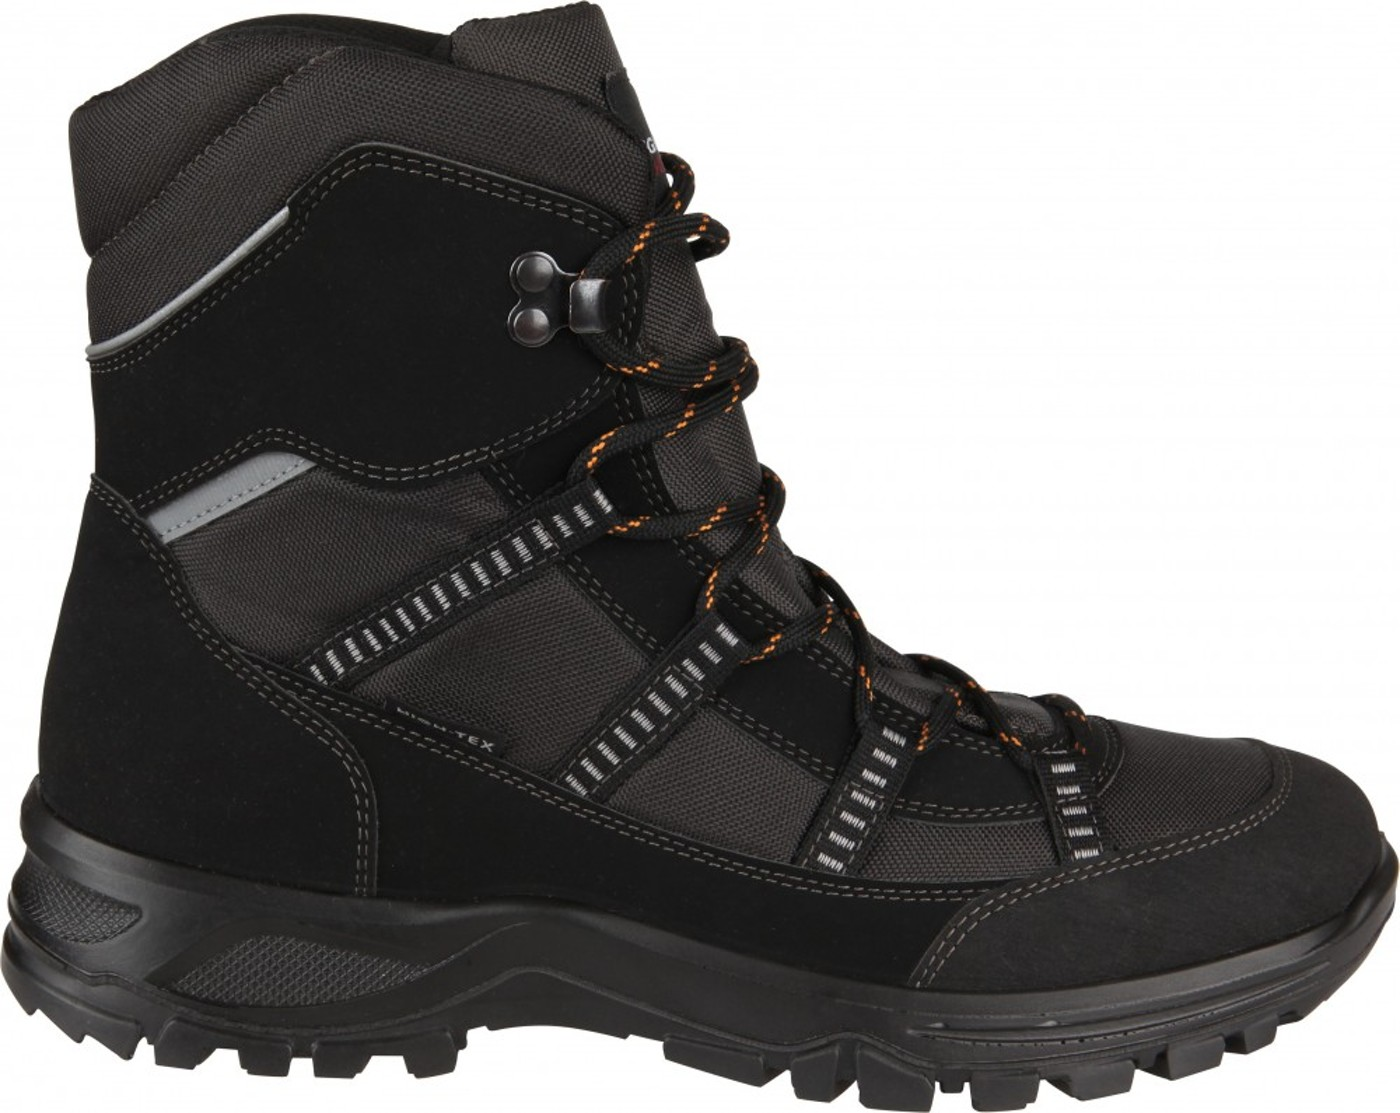 HIGH COLORADO Winterboots TIROL Unisex